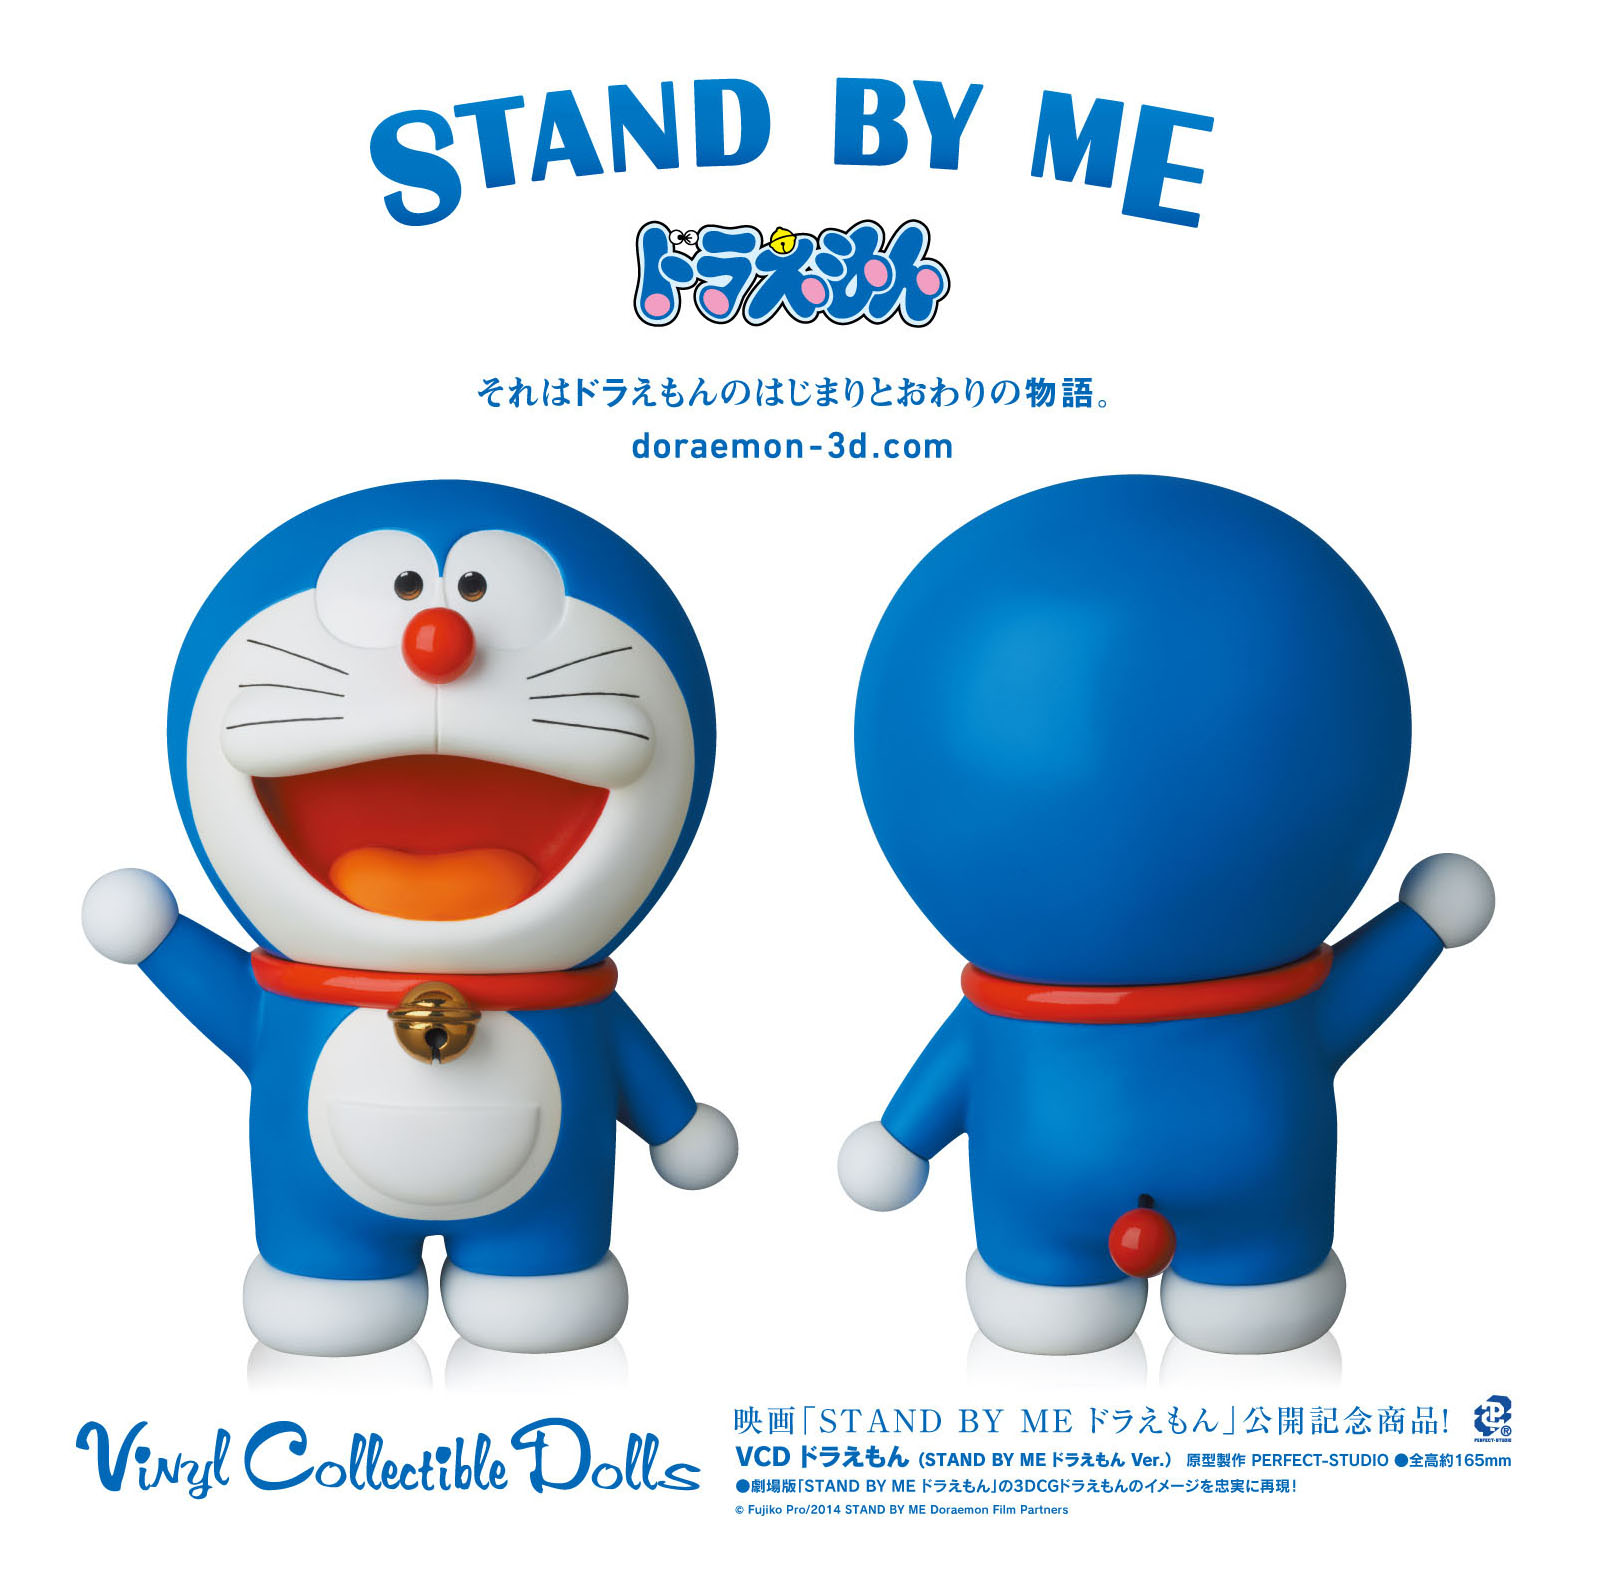 Stand by me doraemon movie hd wallpapers stand by me doraemon wallpapers voltagebd Images